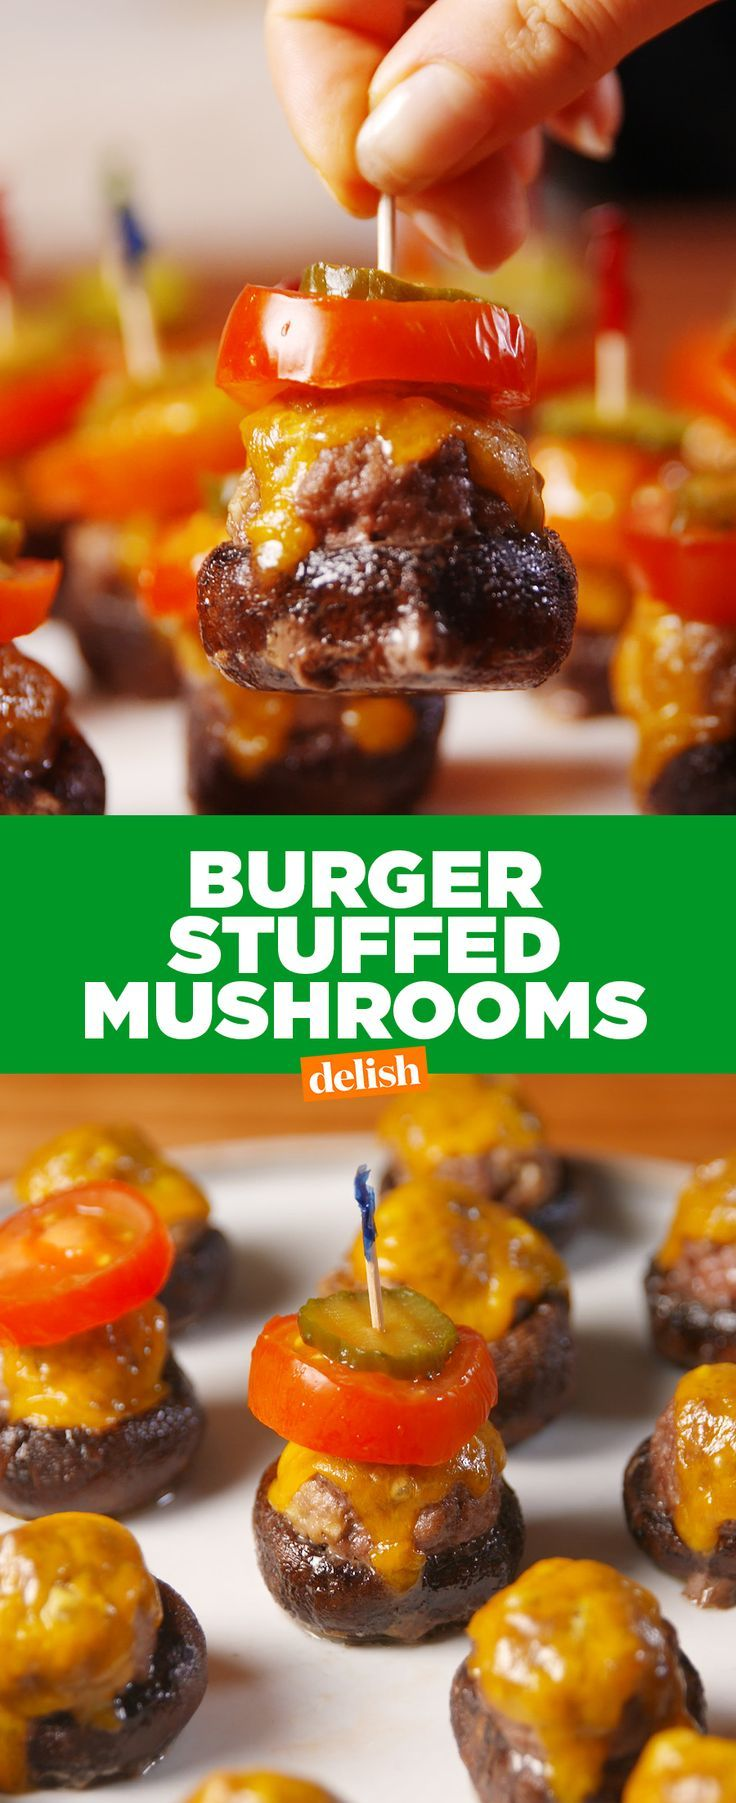 Burger Stuffed Mushrooms   The Best Party Appetizers ! Easy Party Appetizers   Crowd Pleasers   Finger Foods   Party Appetizer Recipes   Kids Party Appetizers   Dinner Party Appetizers   Pass Around Appetizers   Hors doeuvres   Make Ahead Party Appetizers   Vegetarian Party Appetizers   Non-Vegetarian Party Appetizers   Appetizers on a Stick   Repinned by @purplevelvetpro